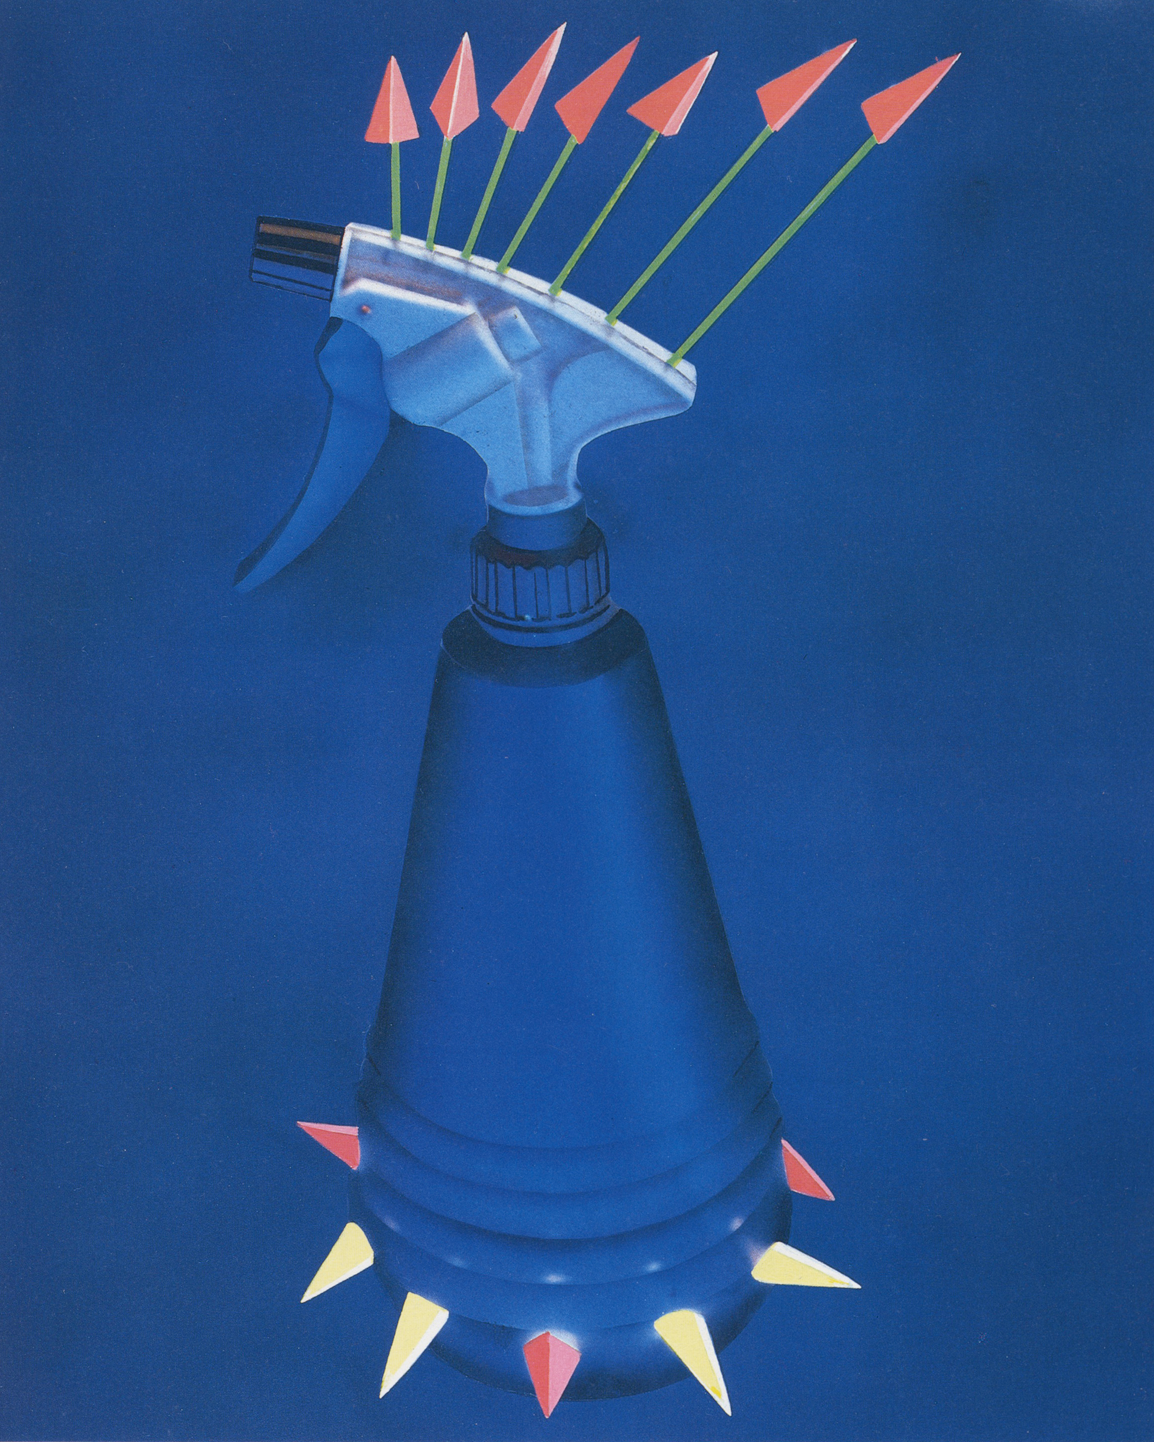 Banal Objects: Spray Bottle